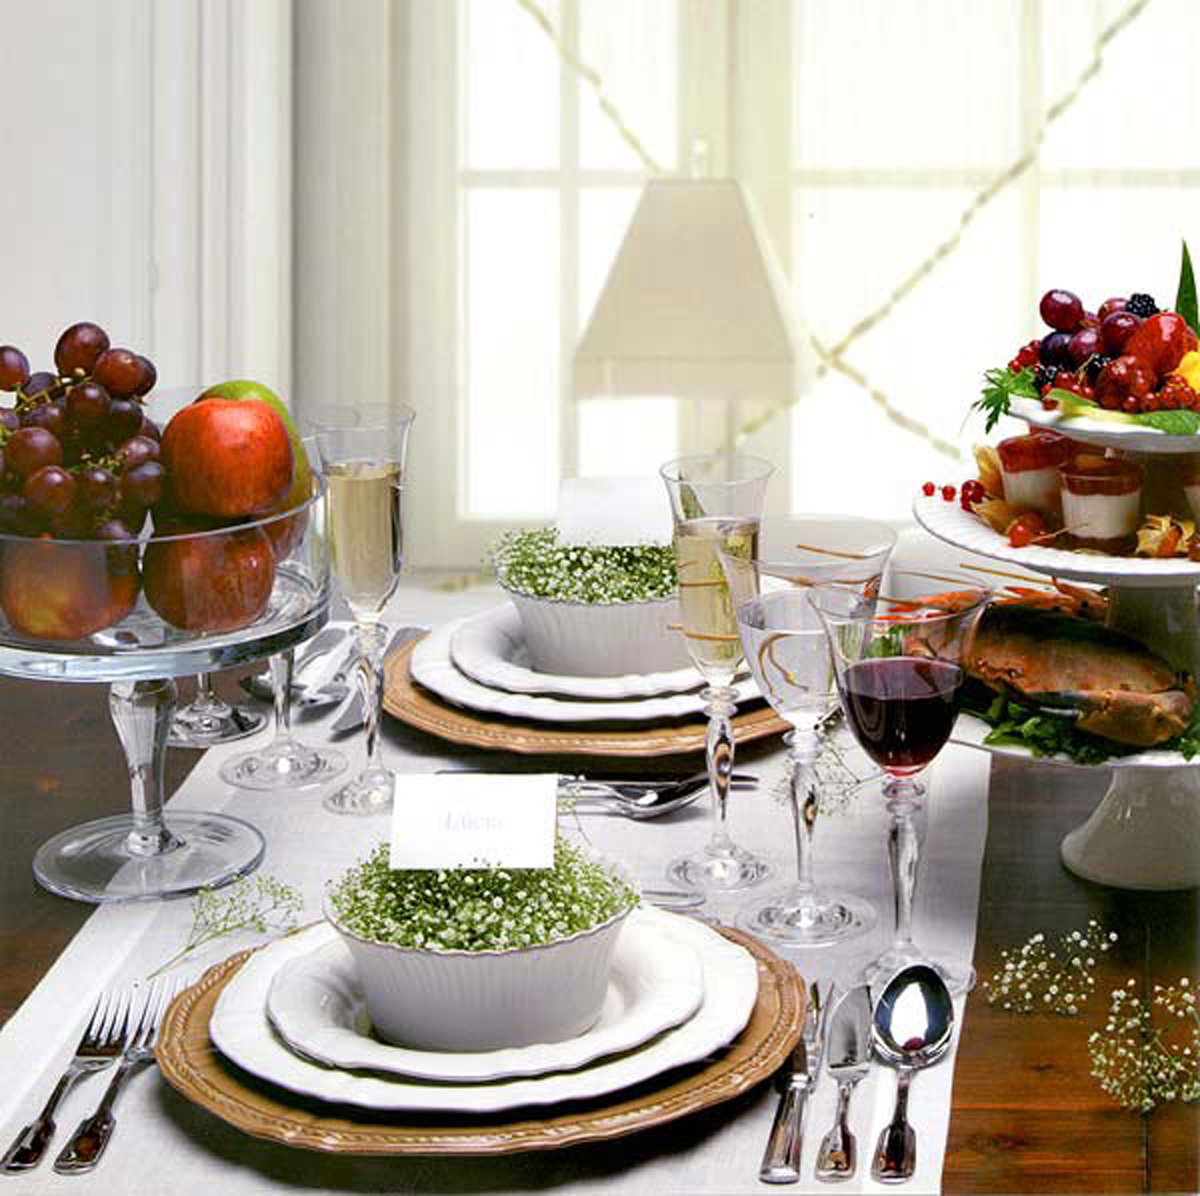 Cozy Design Of The White Napkins And Brown Woodn Table As Well As The Ideas Of The Dining Table Decor